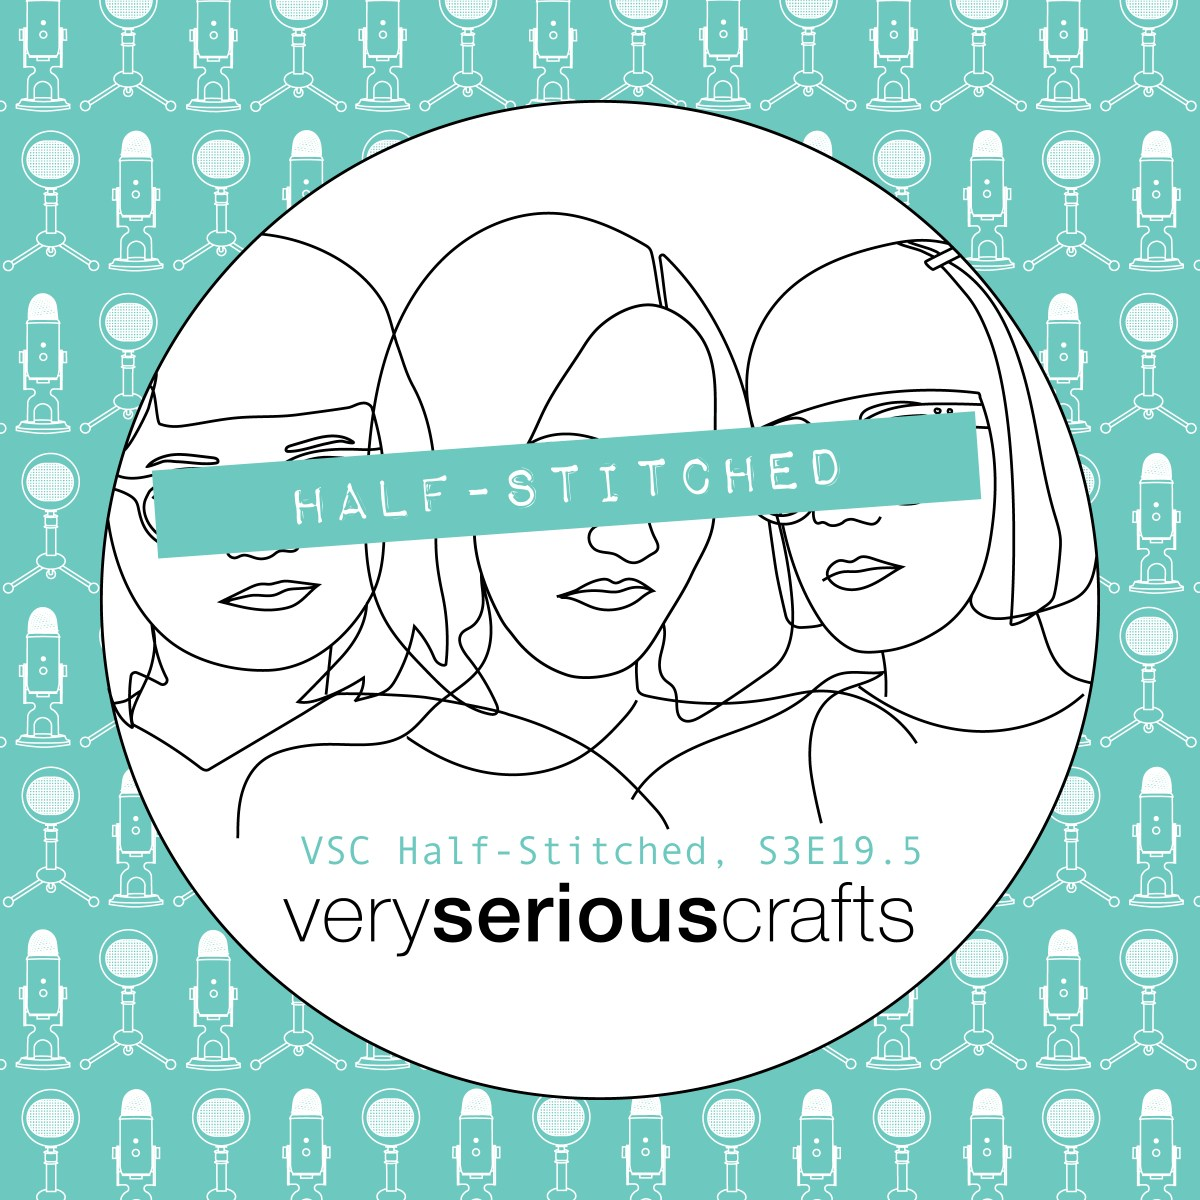 The Very Serious Crafts Podcast, Patreon Half-Stitched Episode S3E19.5